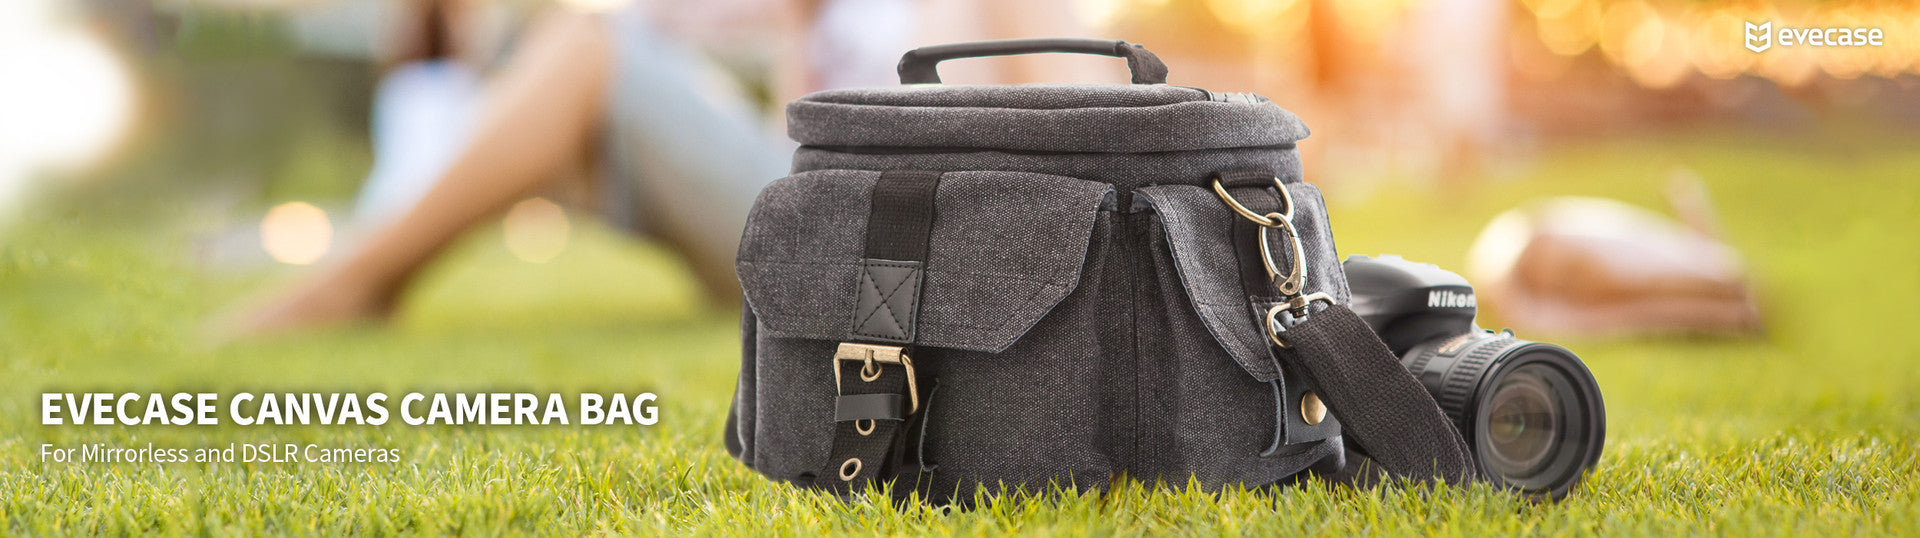 EVECASE CANVAS CAMERA BAG